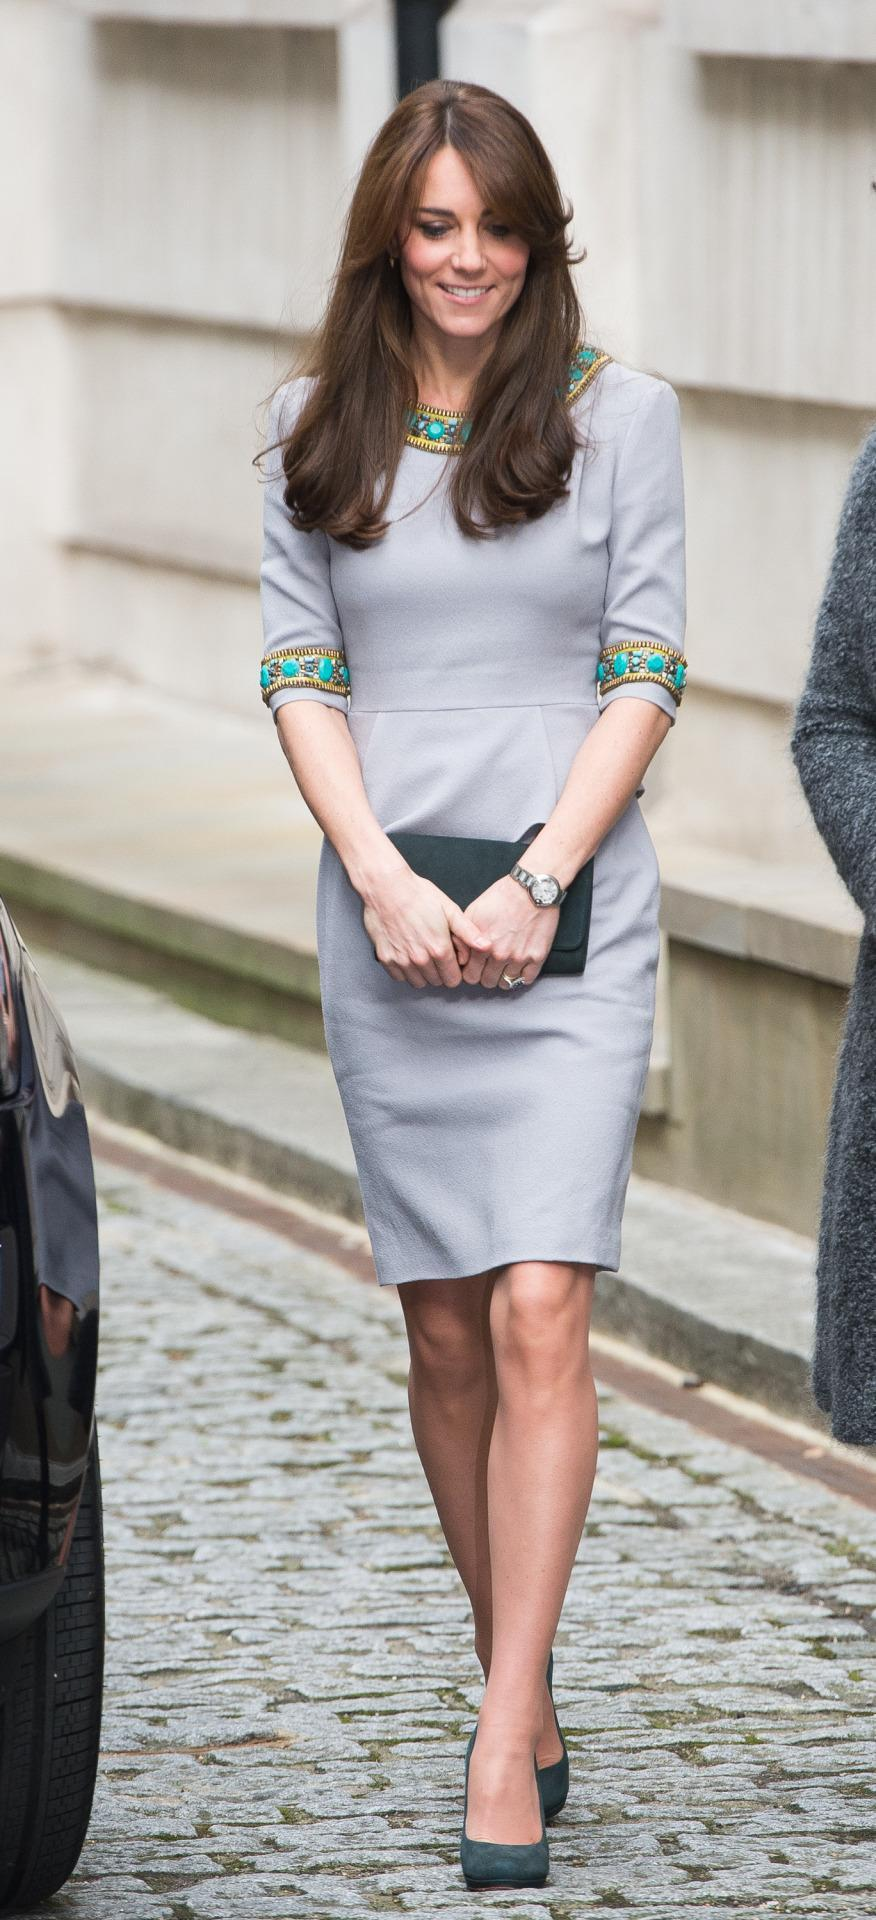 <p>Kate donned a beaded dress by Matthew Williamson for a conference in London. She paired the look with grey heels and a clutch by Emmy London. </p><p><i>[Photo: PA]</i></p>